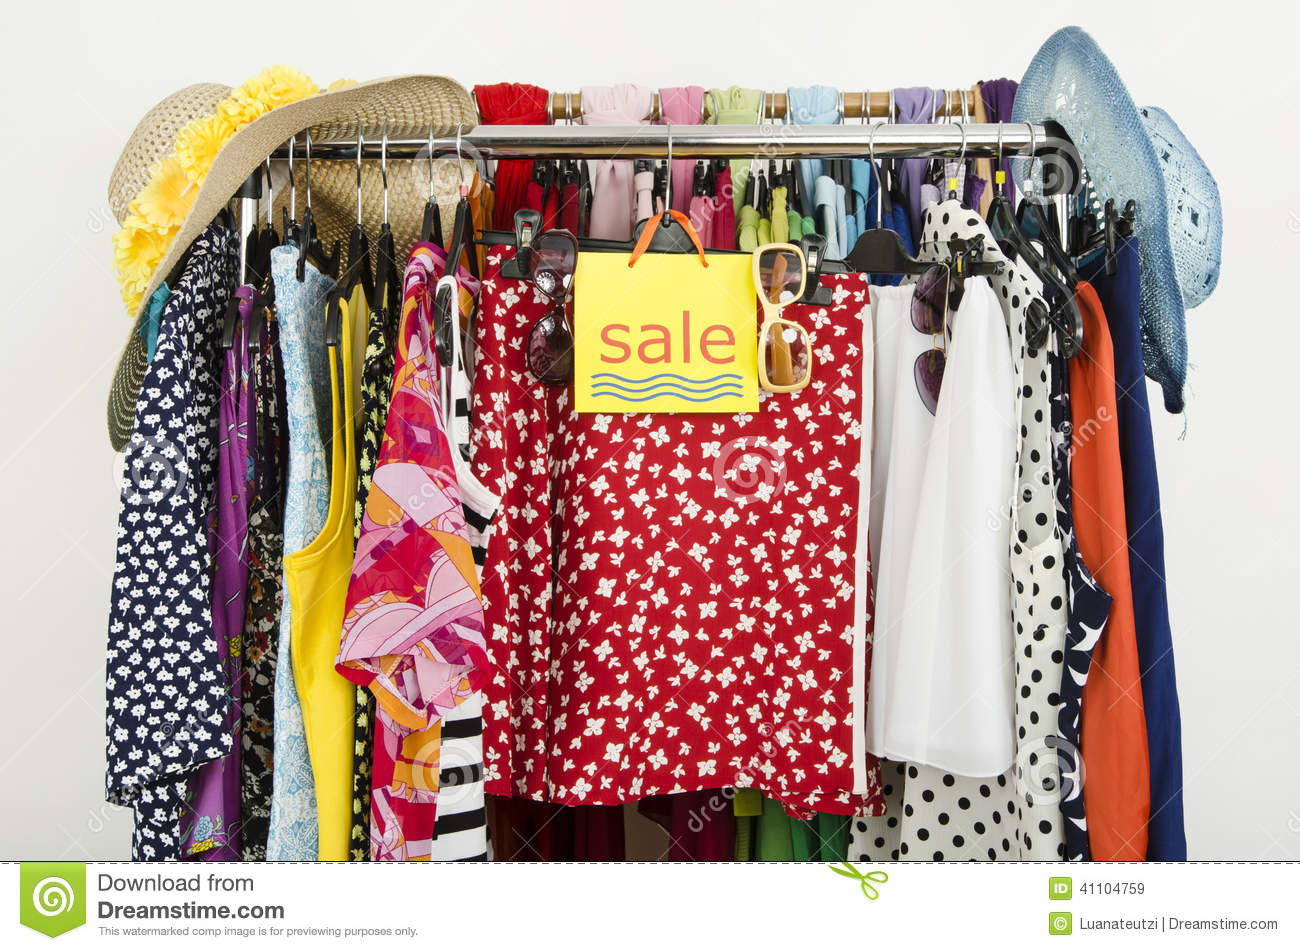 Shop Rainbow's Clearance Sale on womens clothing. Find incredible budget saving values. We offer free shipping on orders over $50 & free returns in store.